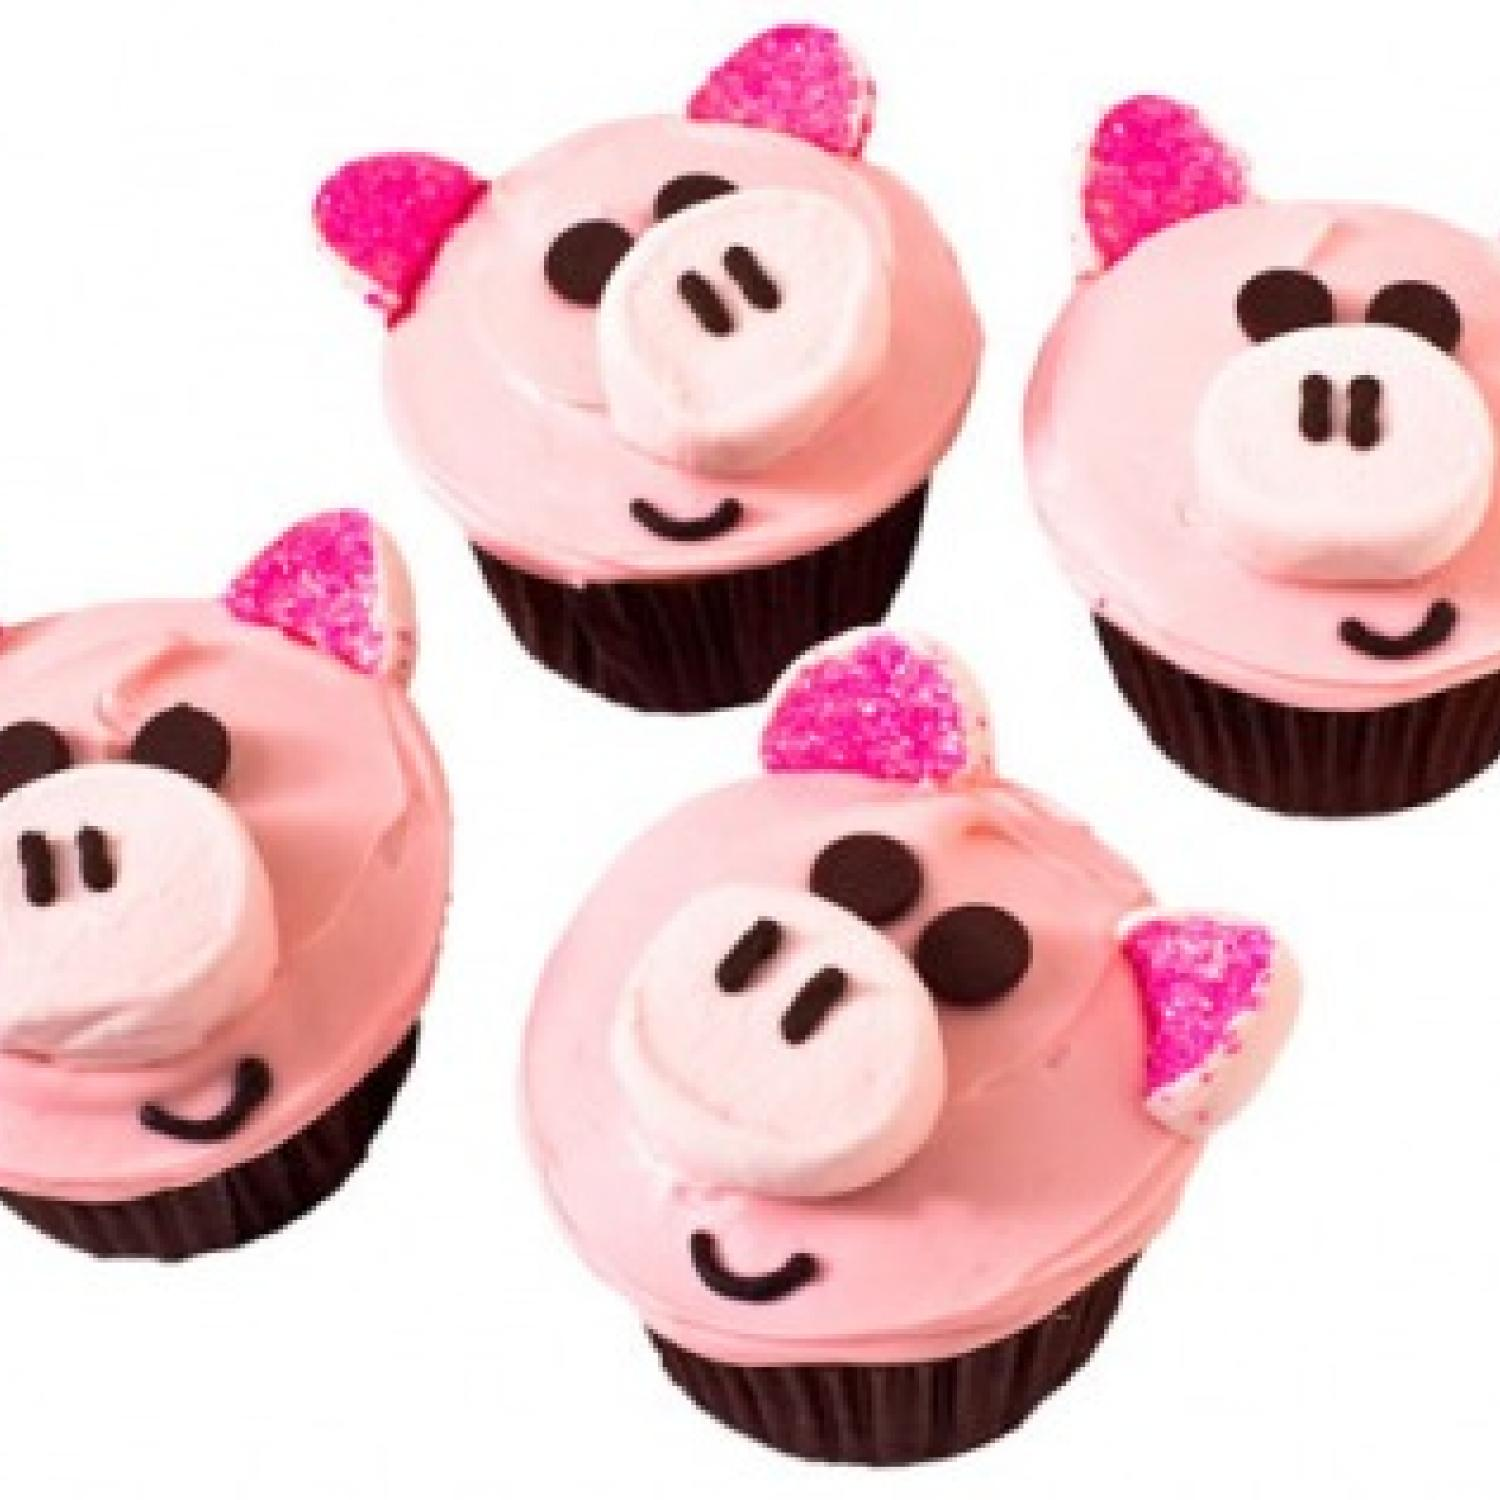 Piggy Birthday Cupcakes Design